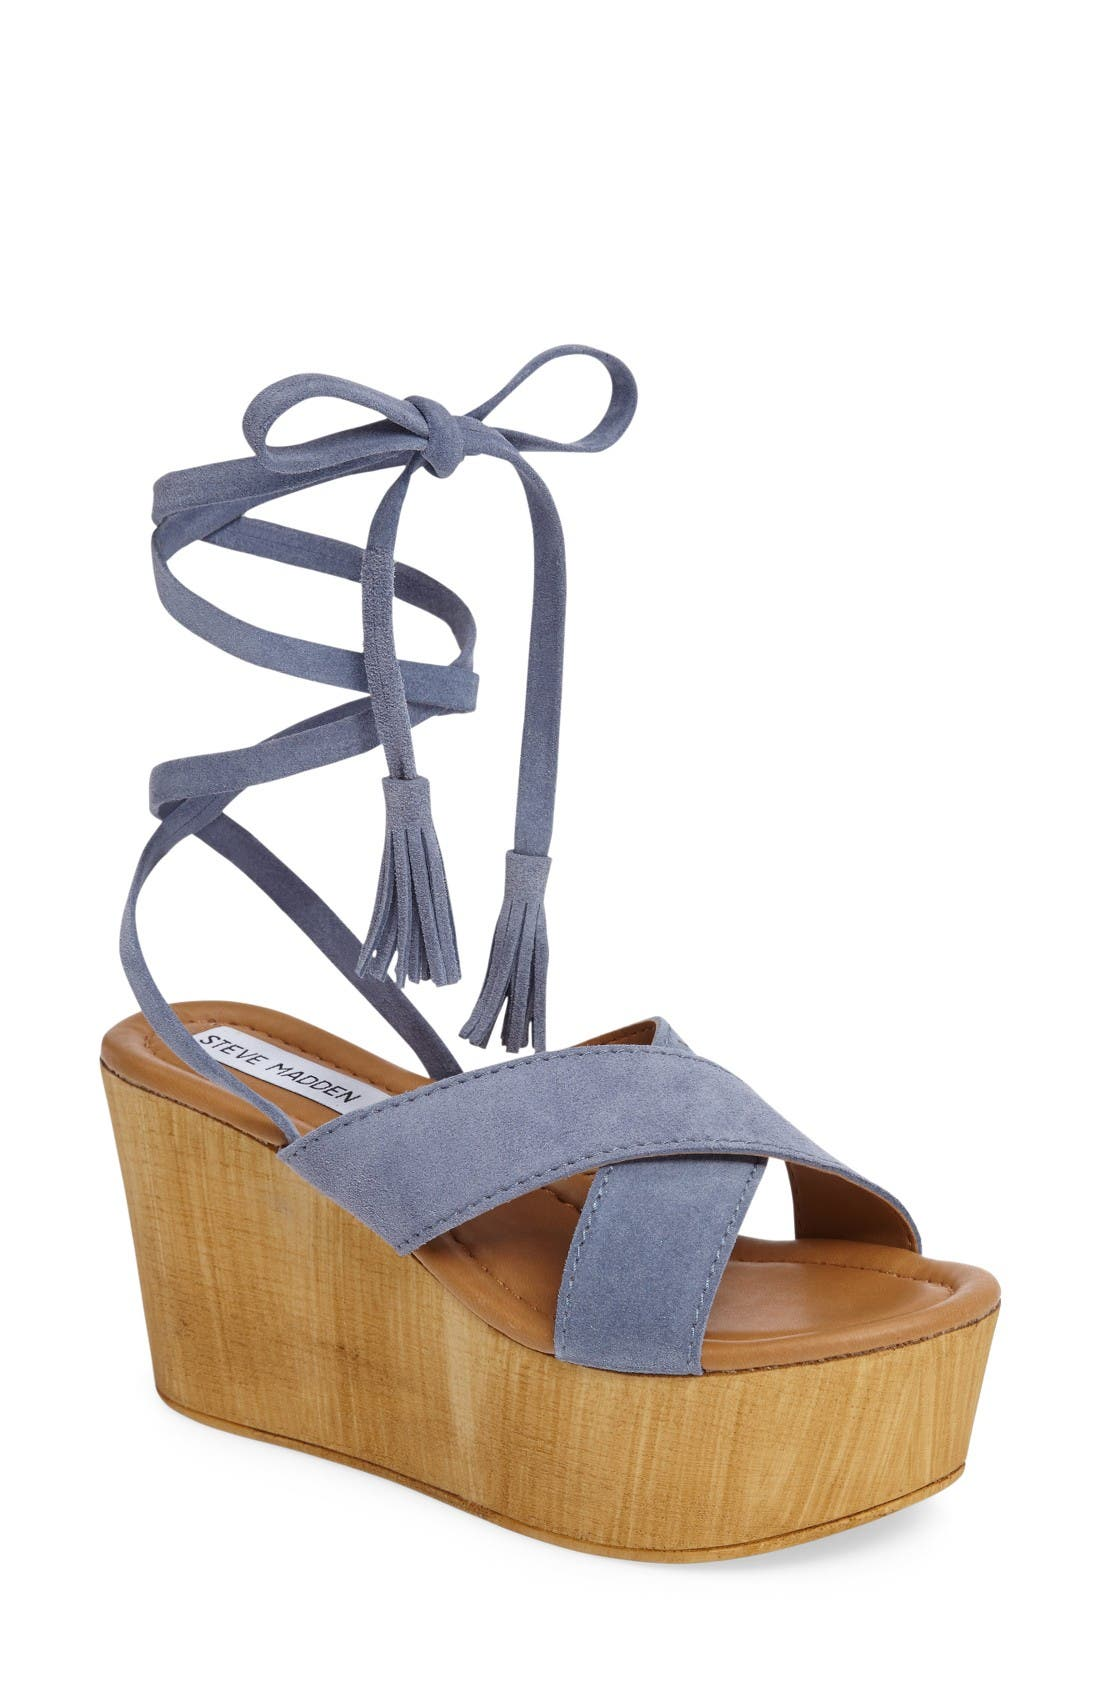 Alternate Image 1 Selected - Steve Madden Shella Platform Sandal (Women)